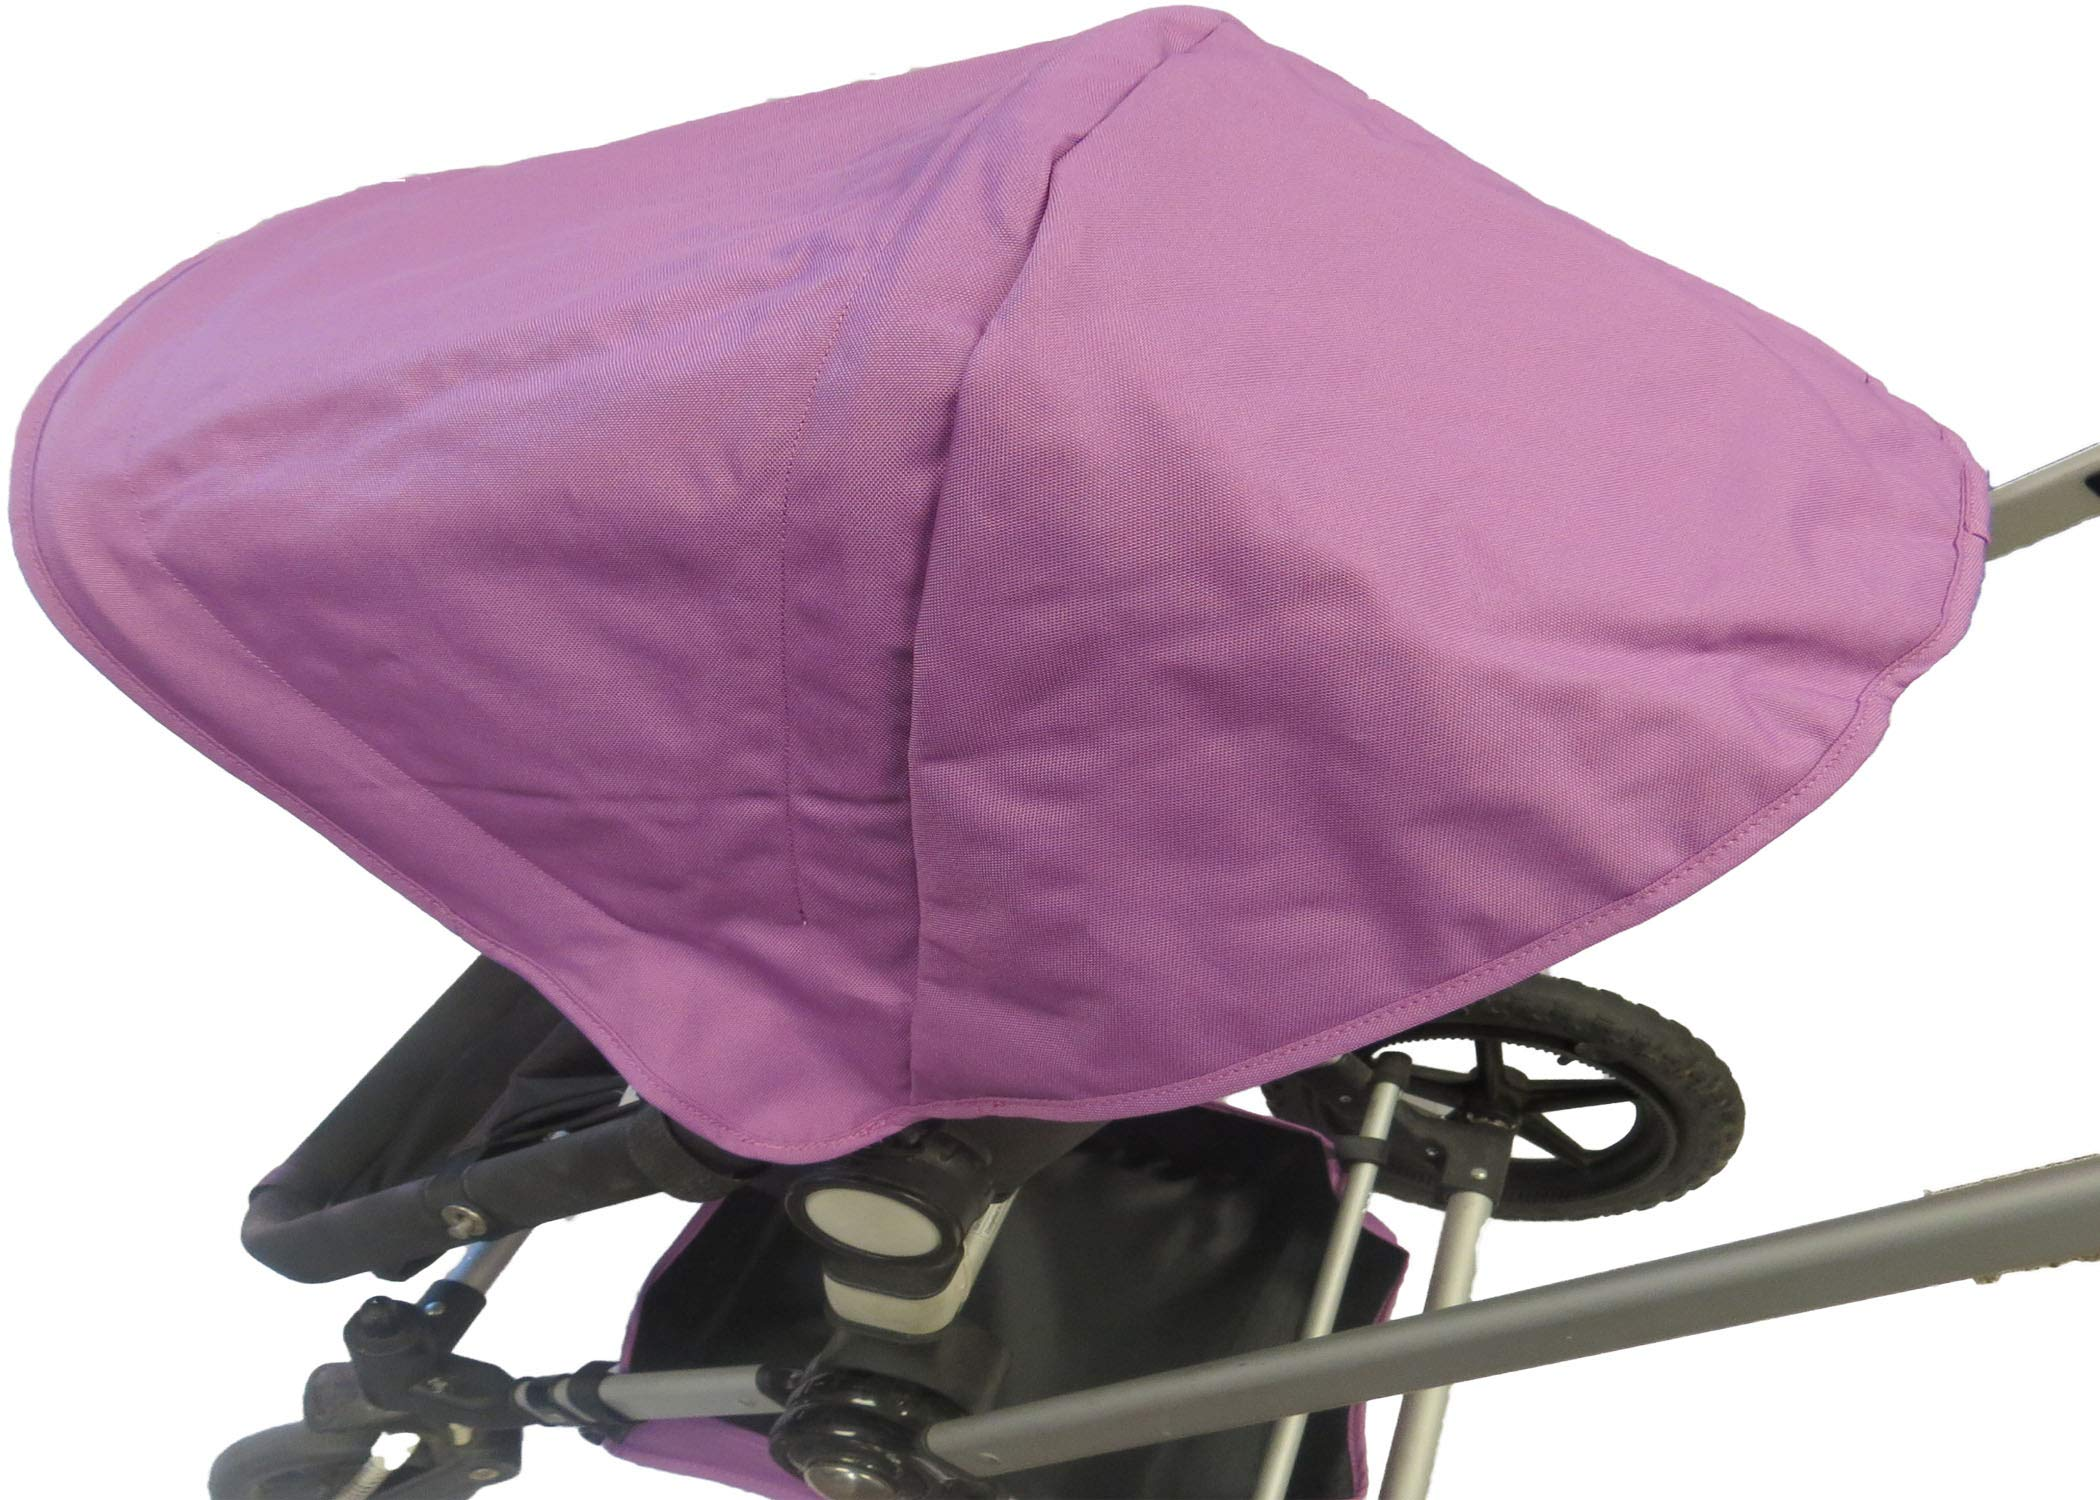 Purple Sun Shade Canopy Hood Cover Umbrella with Wires for Bugaboo Cameleon 1, 2, 3, Frog Baby Child Strollers